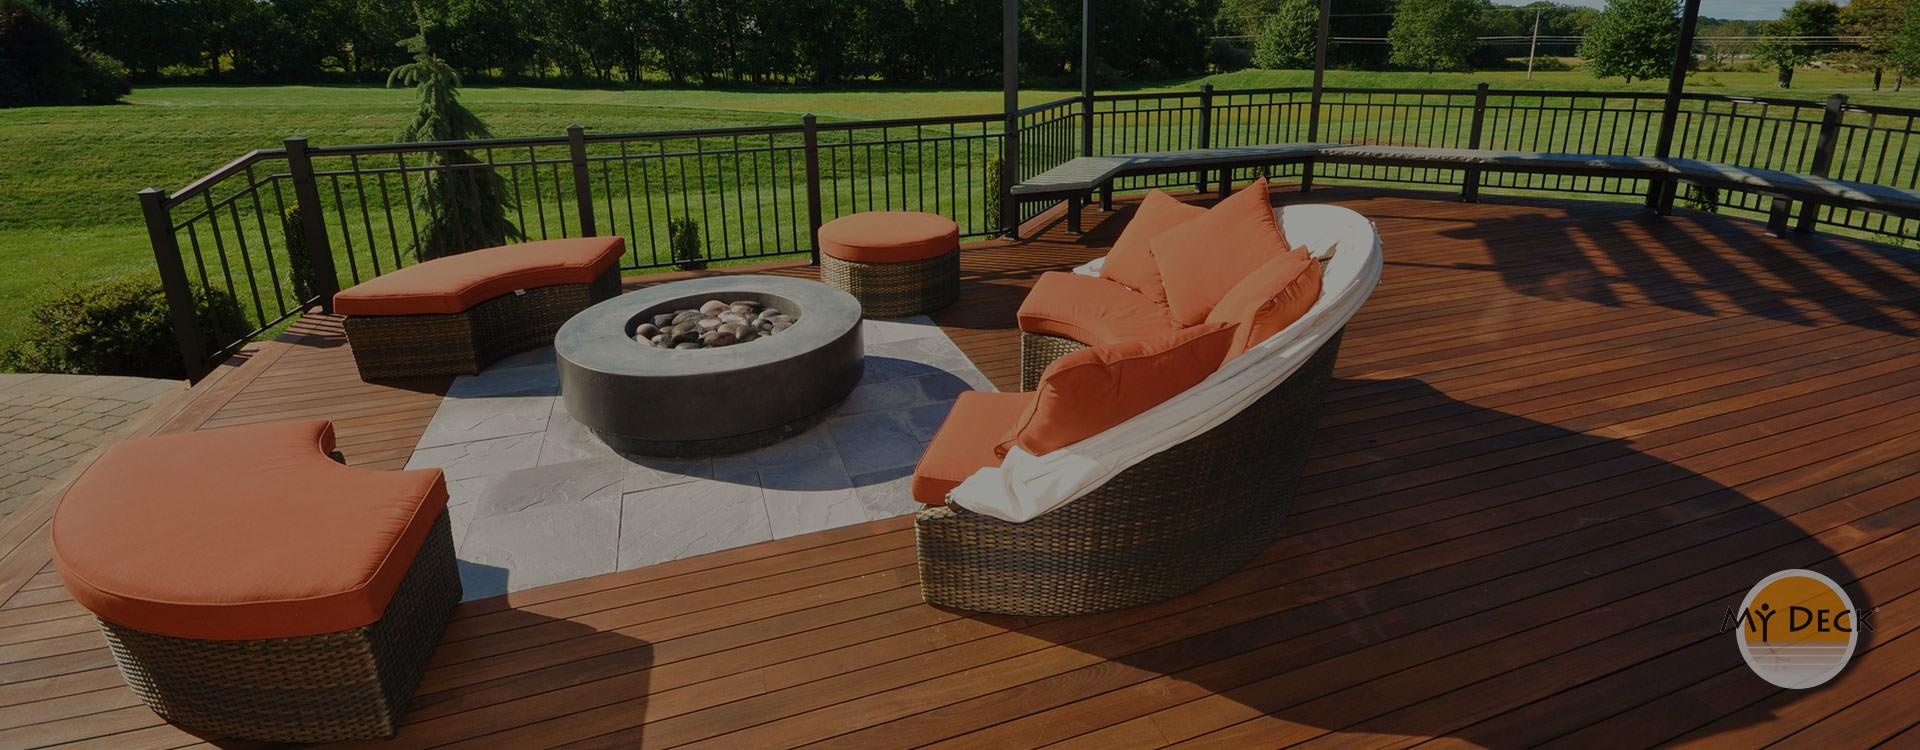 wood deck with metal railing & orange outdoor furniture around fire pit